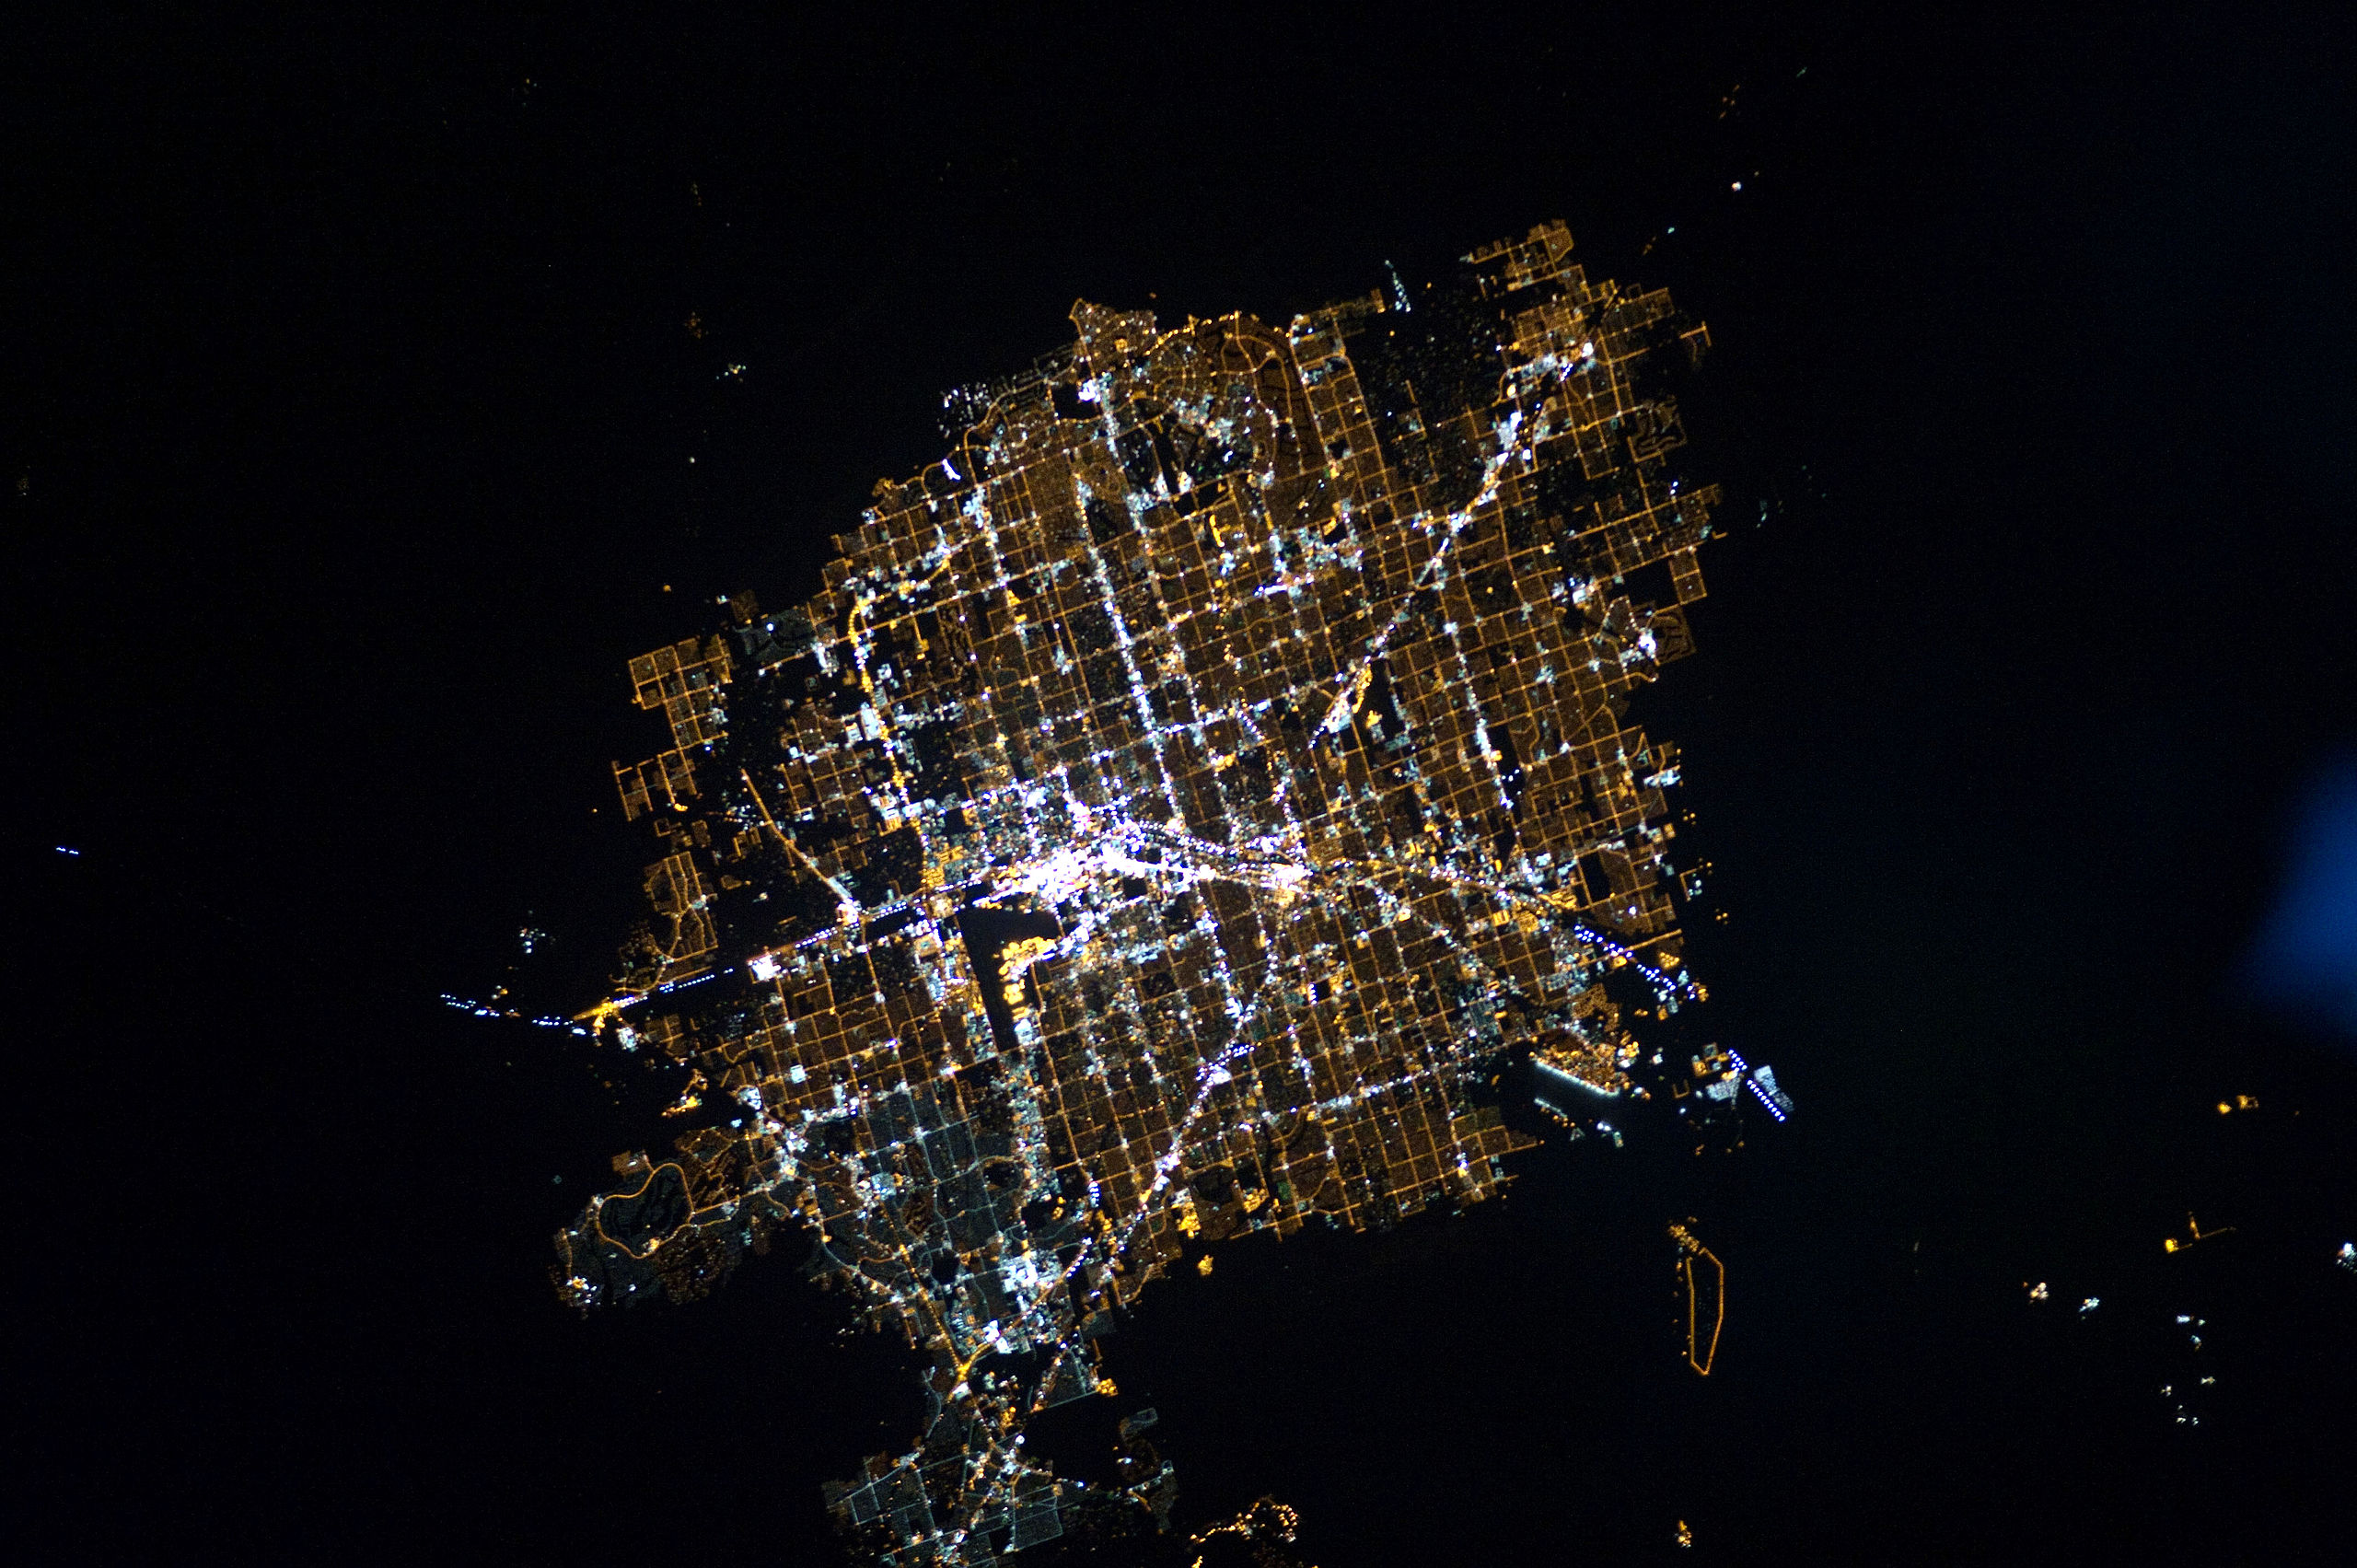 vegas_from_space.JPG